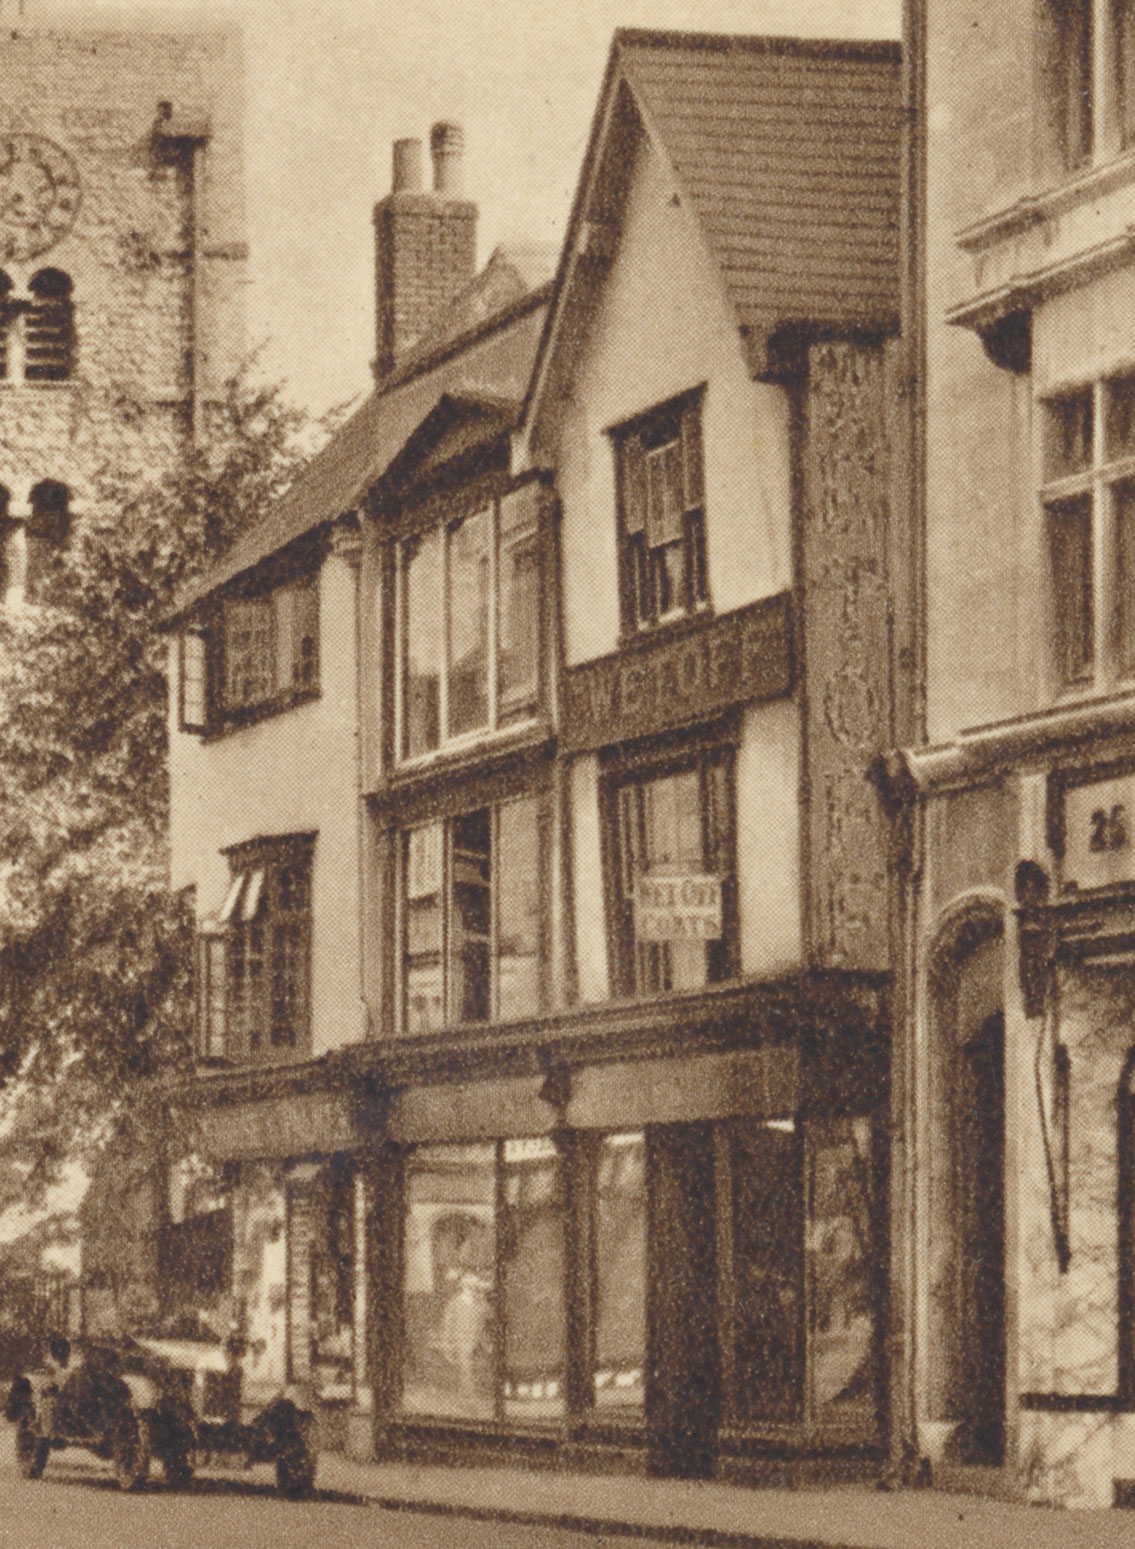 26 to 28 Cornmarket in the 1920s